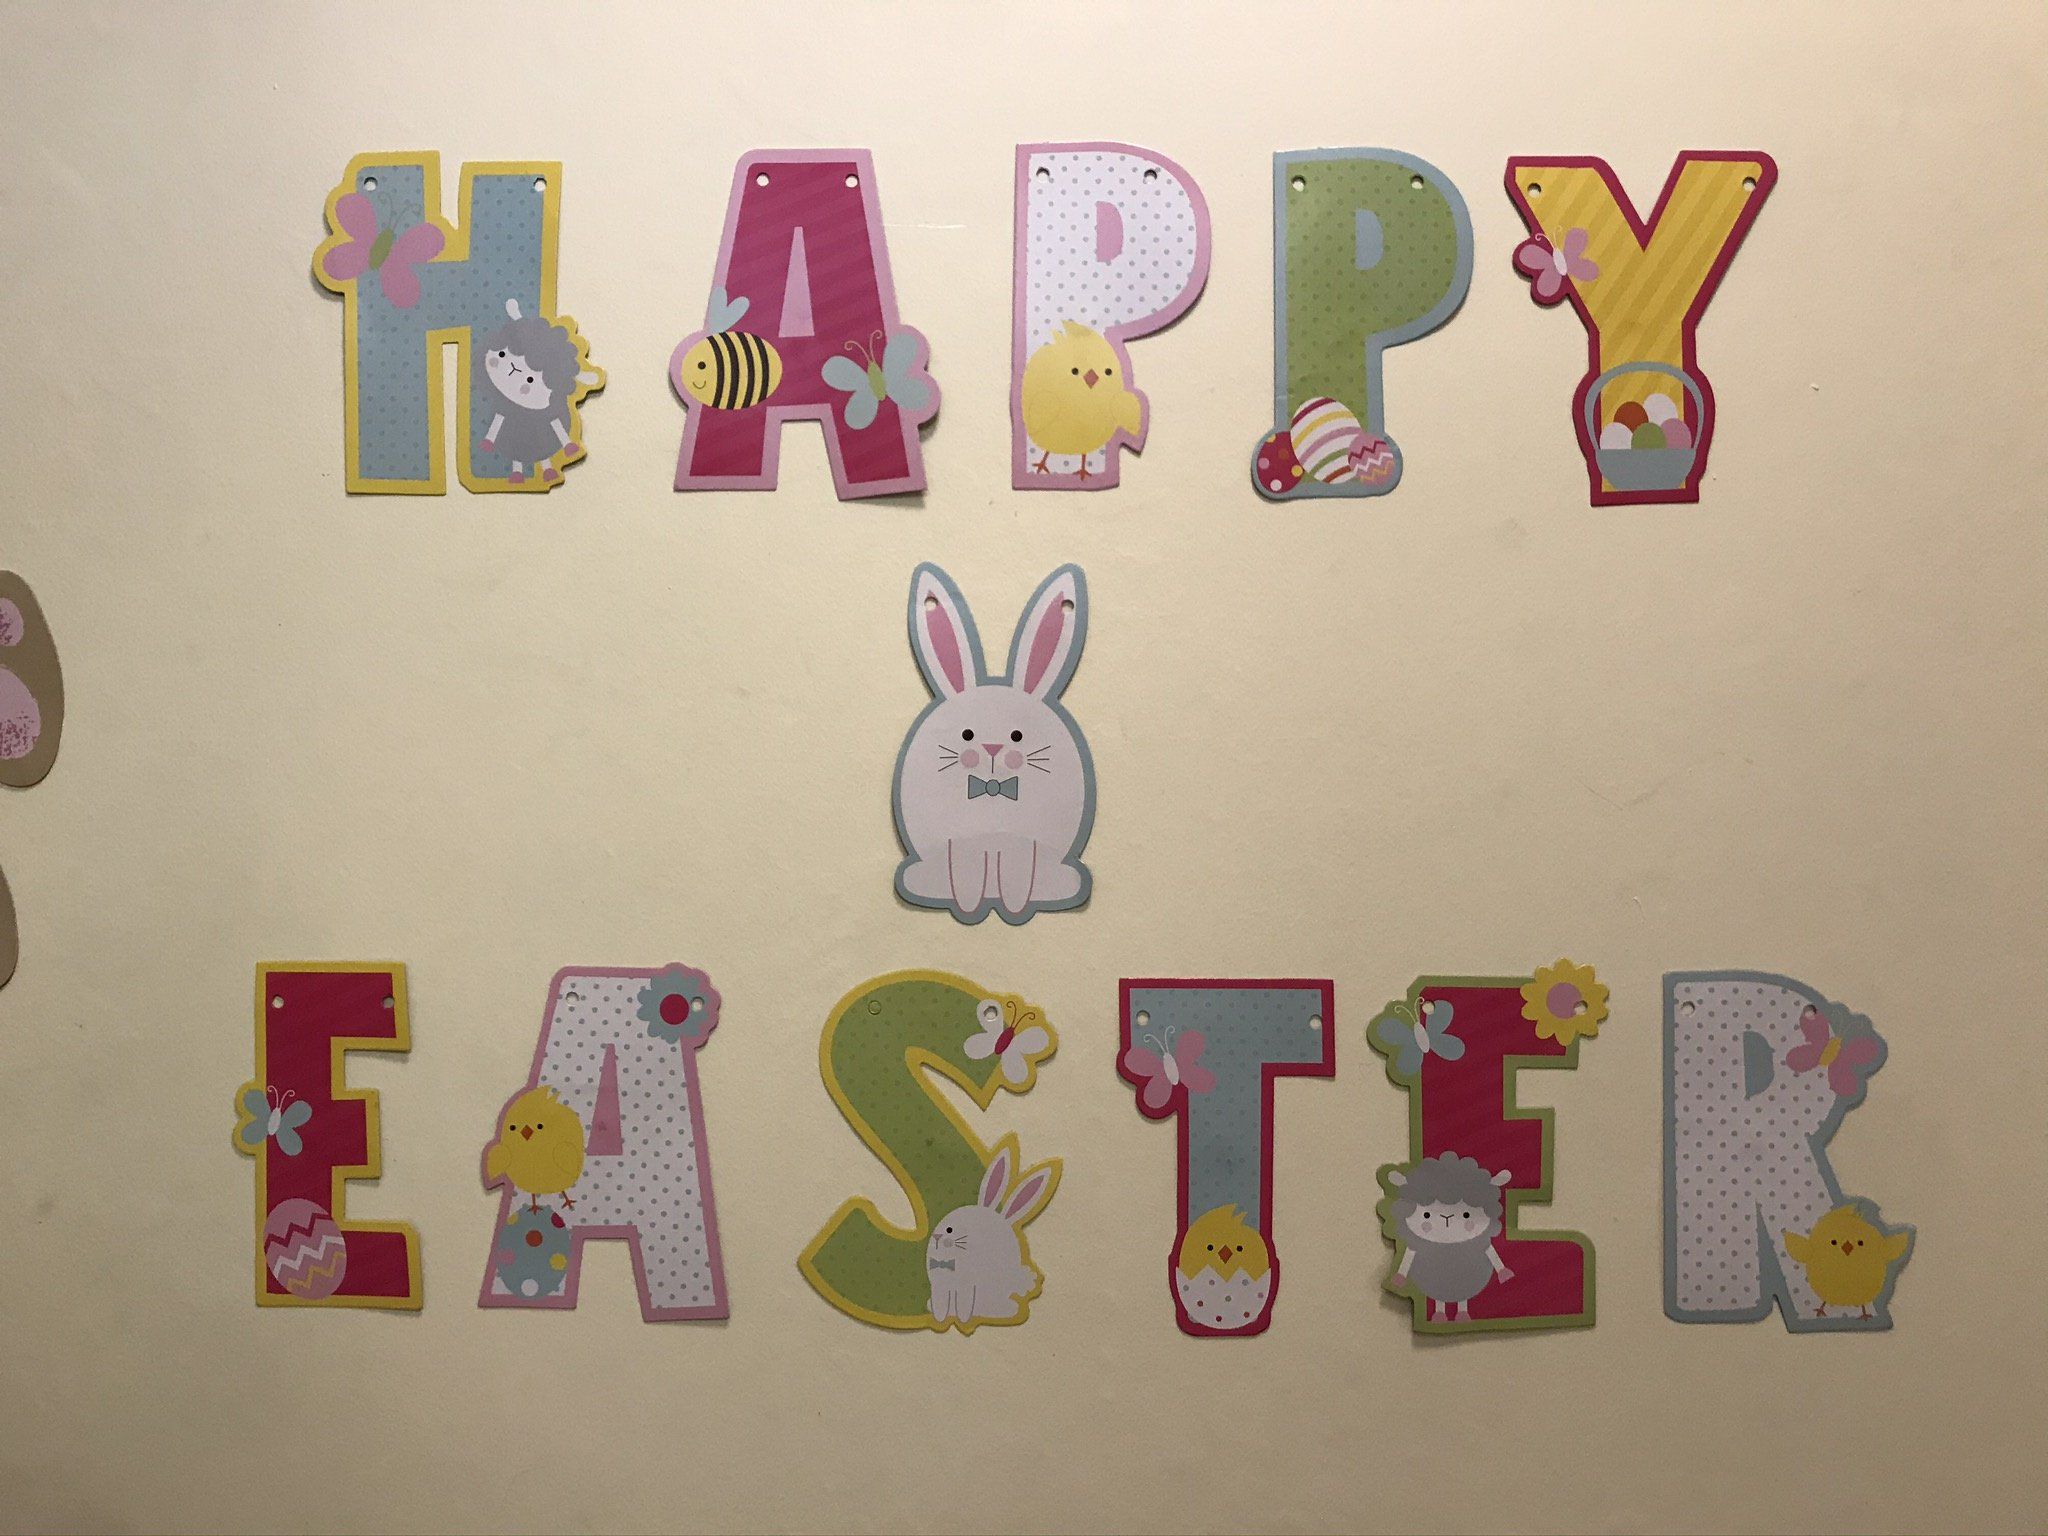 Happy Easter to you all - 2020